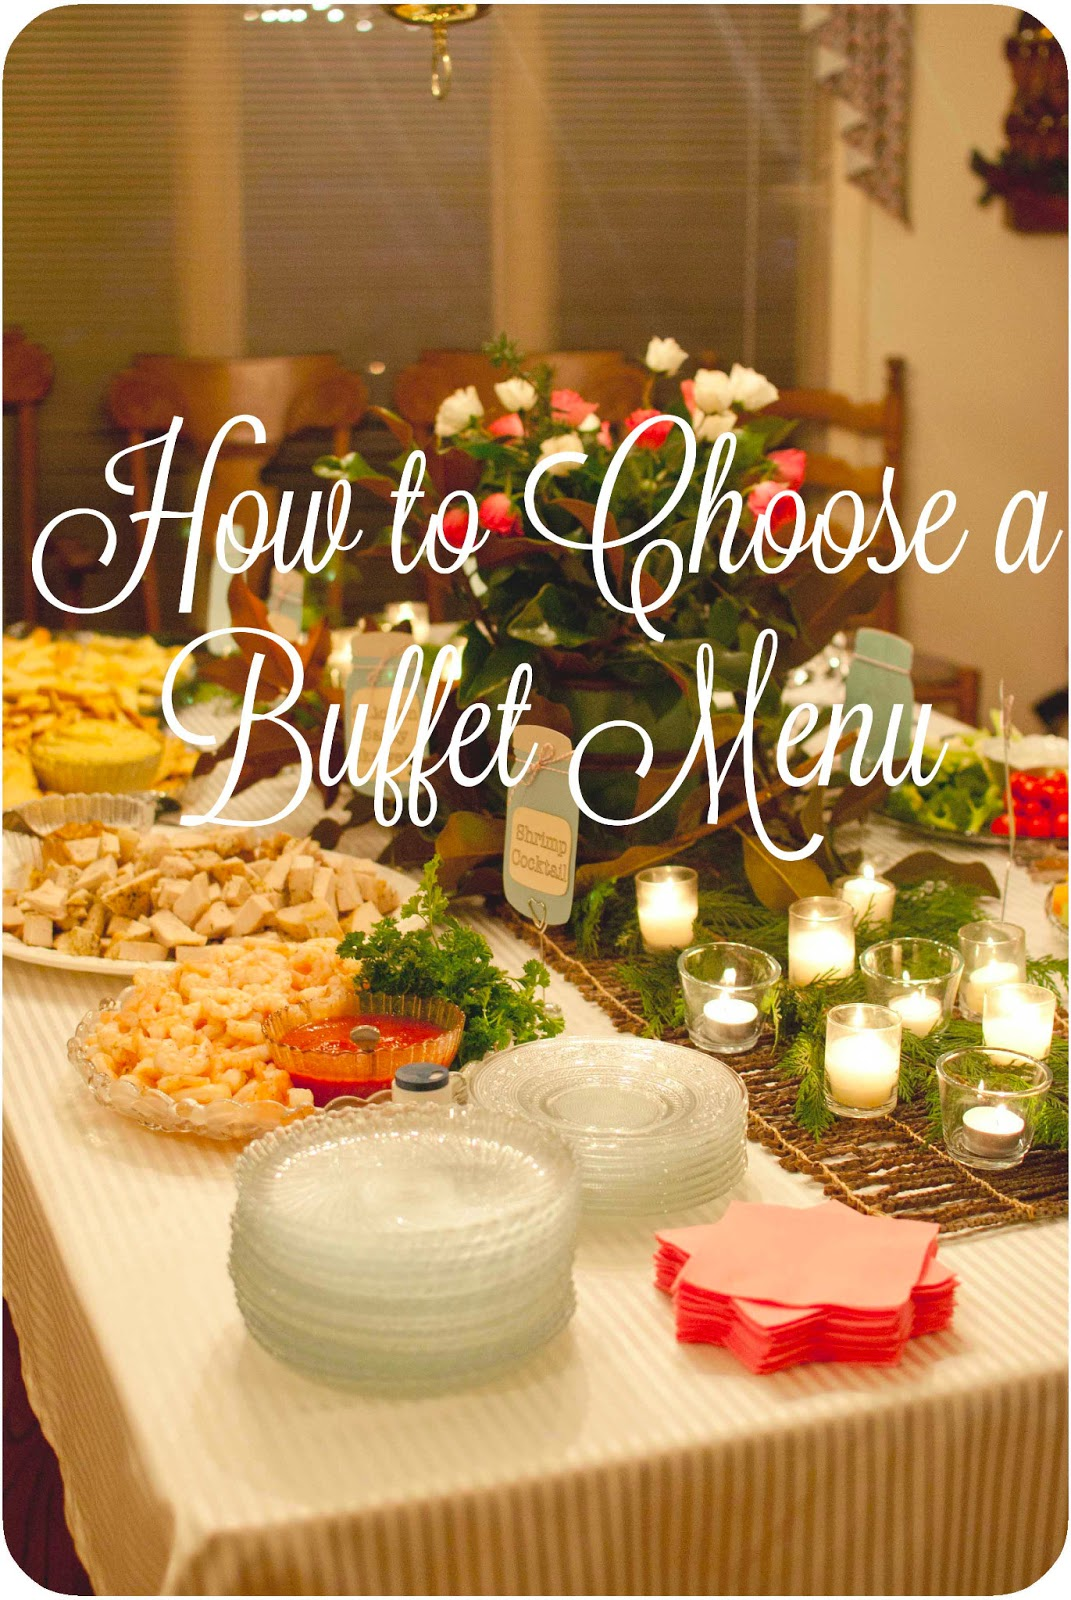 How To Choose A Buffet Menu By Sweetpea Lifestyle